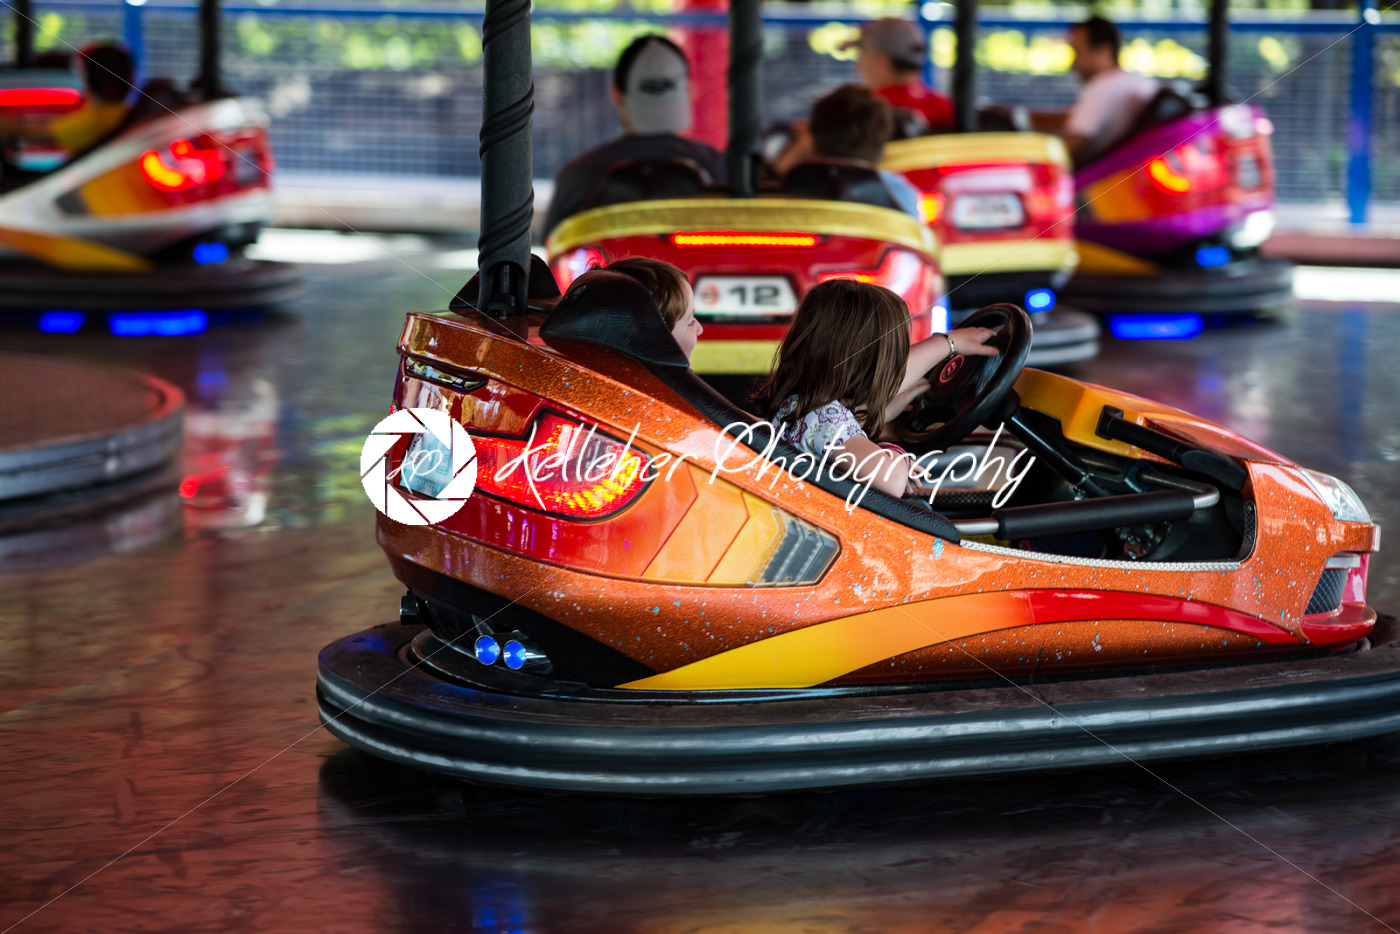 ALLENTOWN, PA – OCTOBER 22: Bumper Cars at Dorney Park in Allentown, Pennsylvania - Kelleher Photography Store